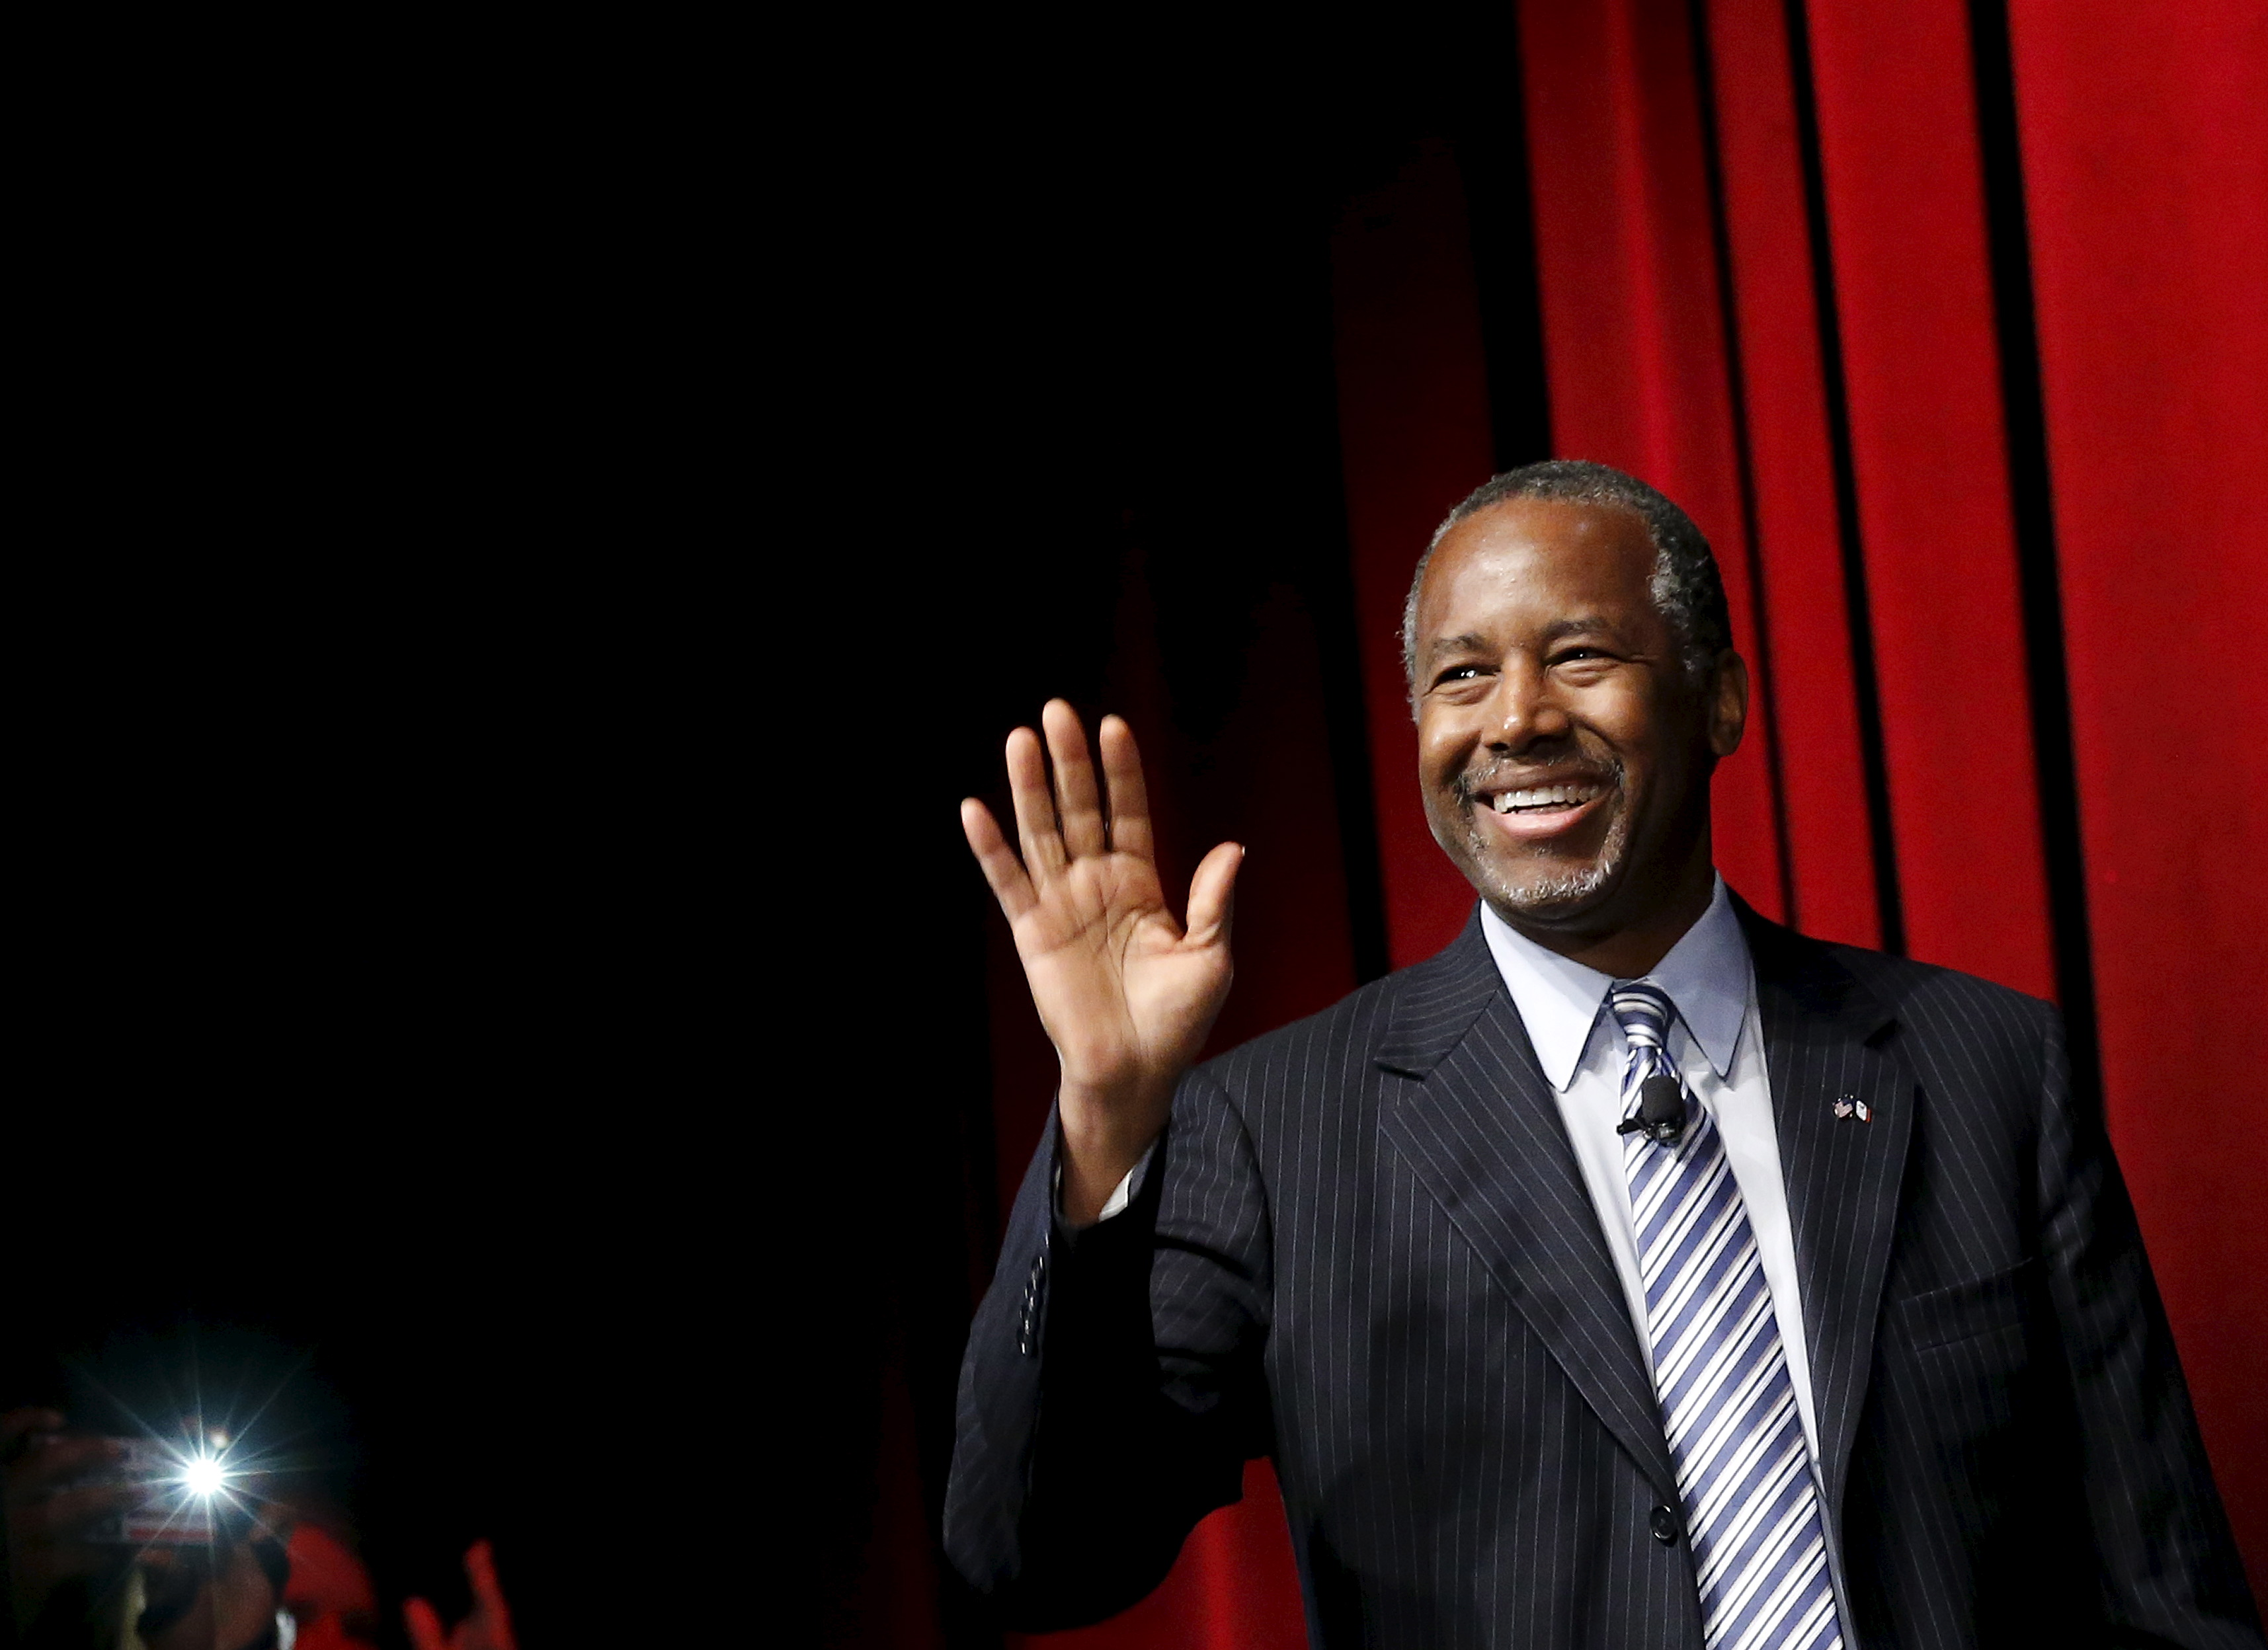 U.S. Republican presidential candidate Dr. Ben Carson arrives to speak at the Family Leadership Summit in Ames, Iowa, July 18, 2015. Photo by Jim Young/Reuters